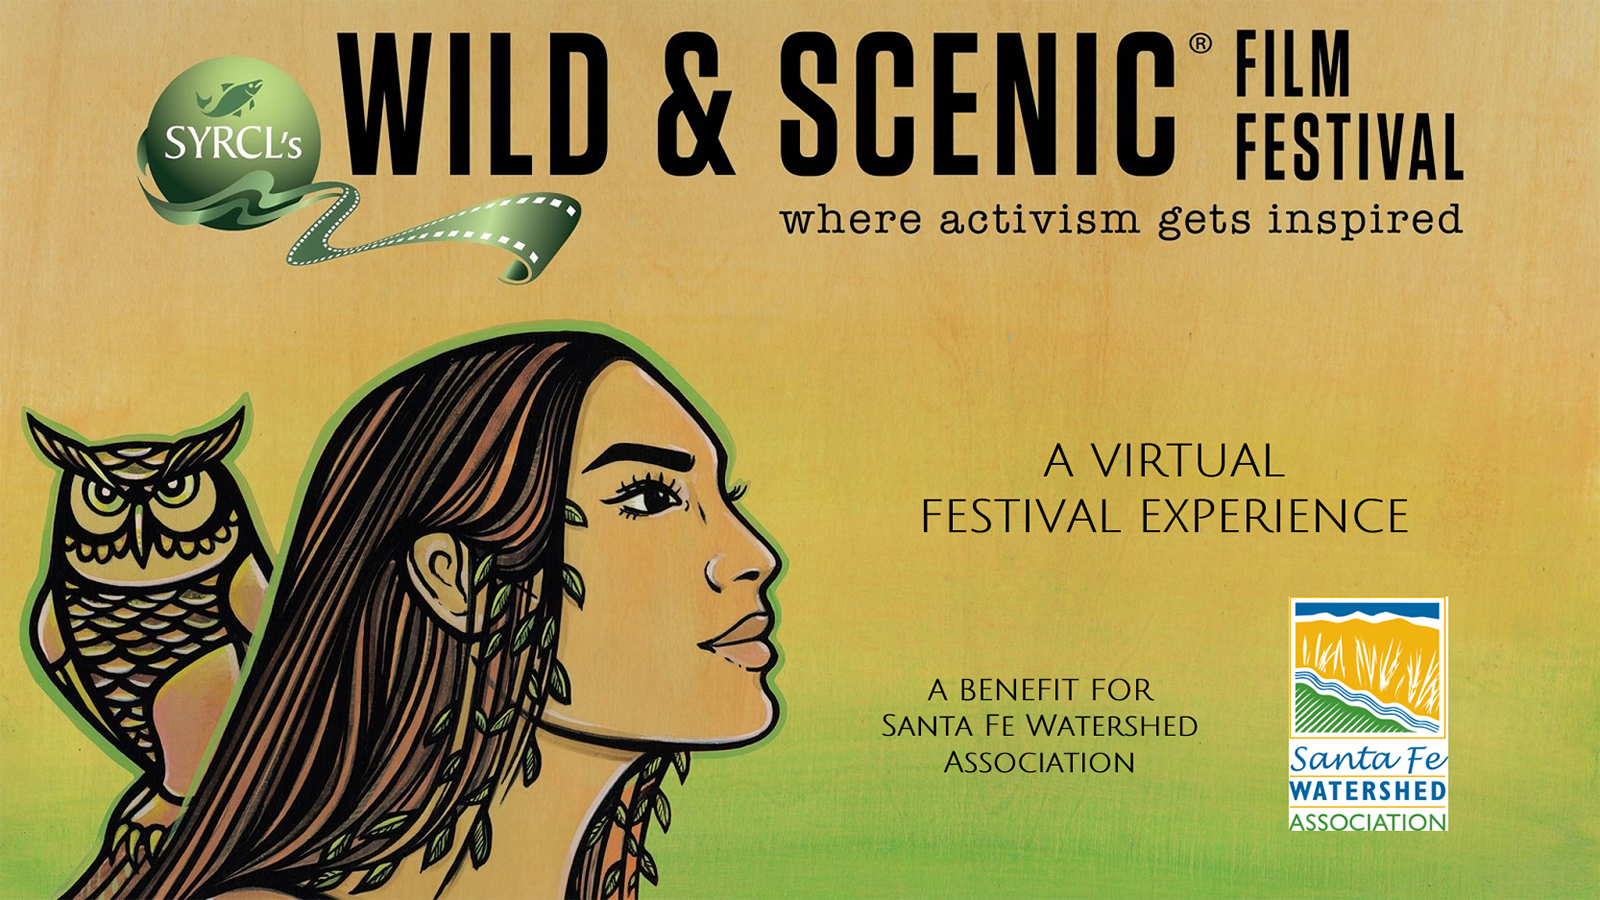 Santa Fe Watershed Association Presents SYRCL's Wild & Scenic Film Festival On Tour